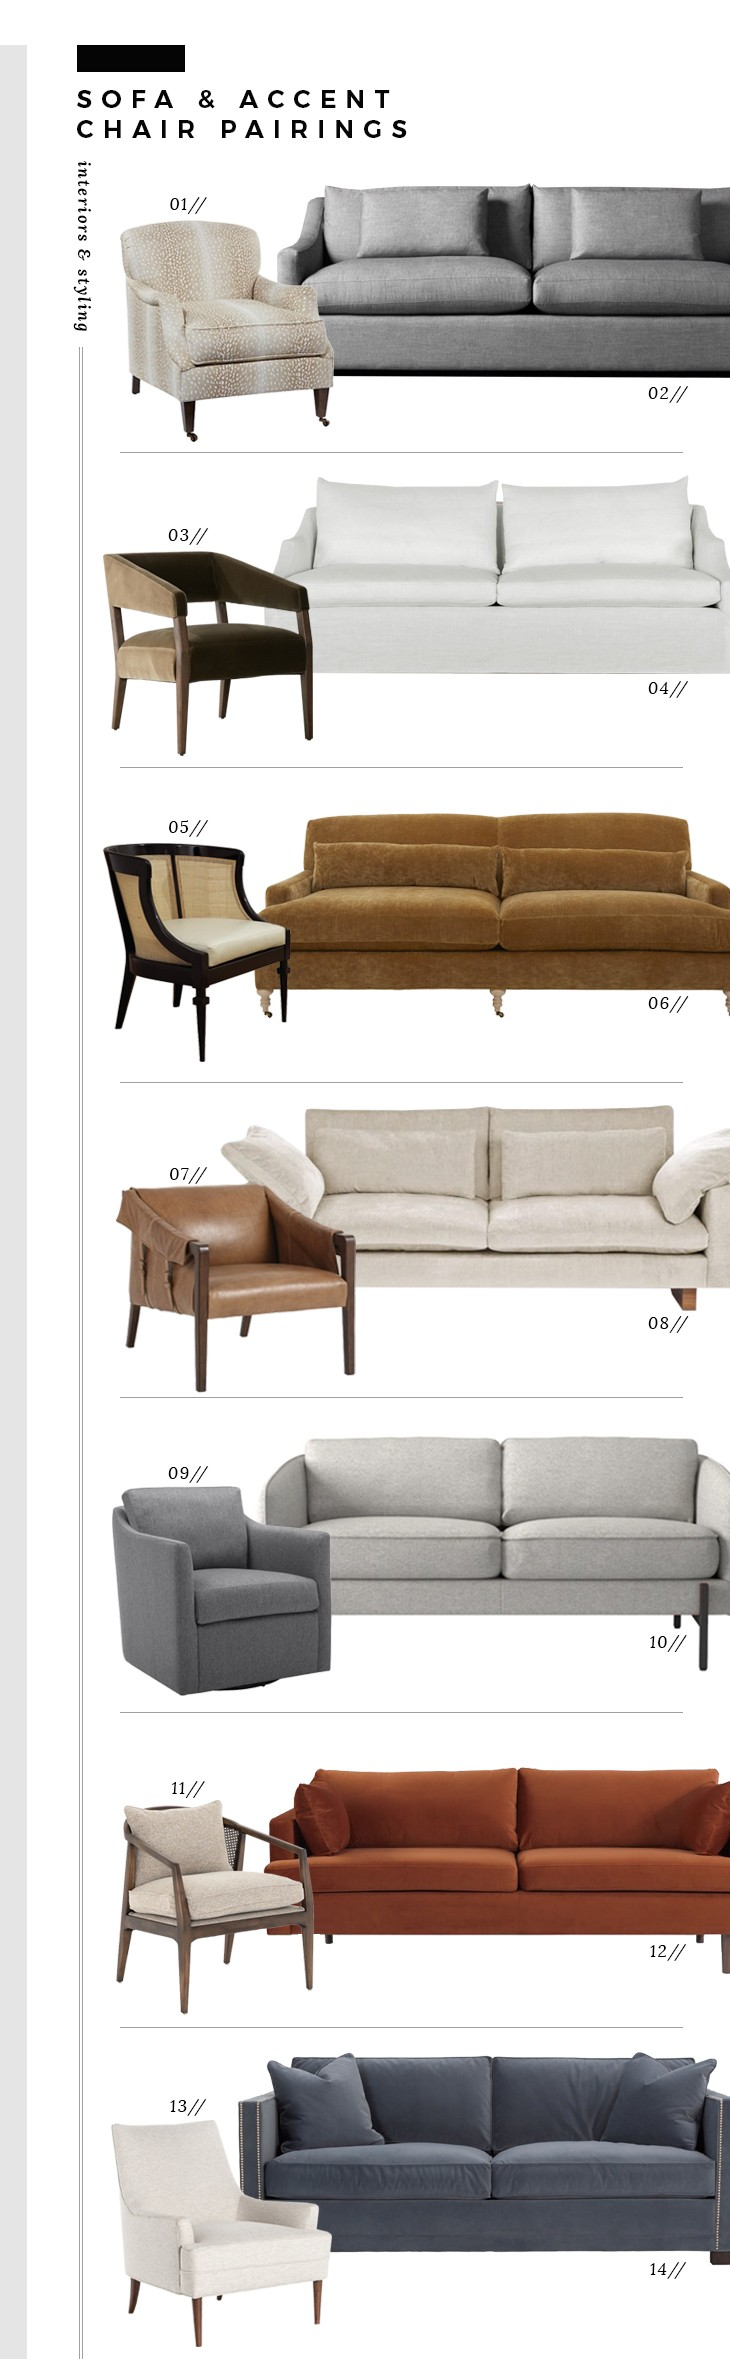 Sofa and Accent Chair Pairings - Room for Tuesday